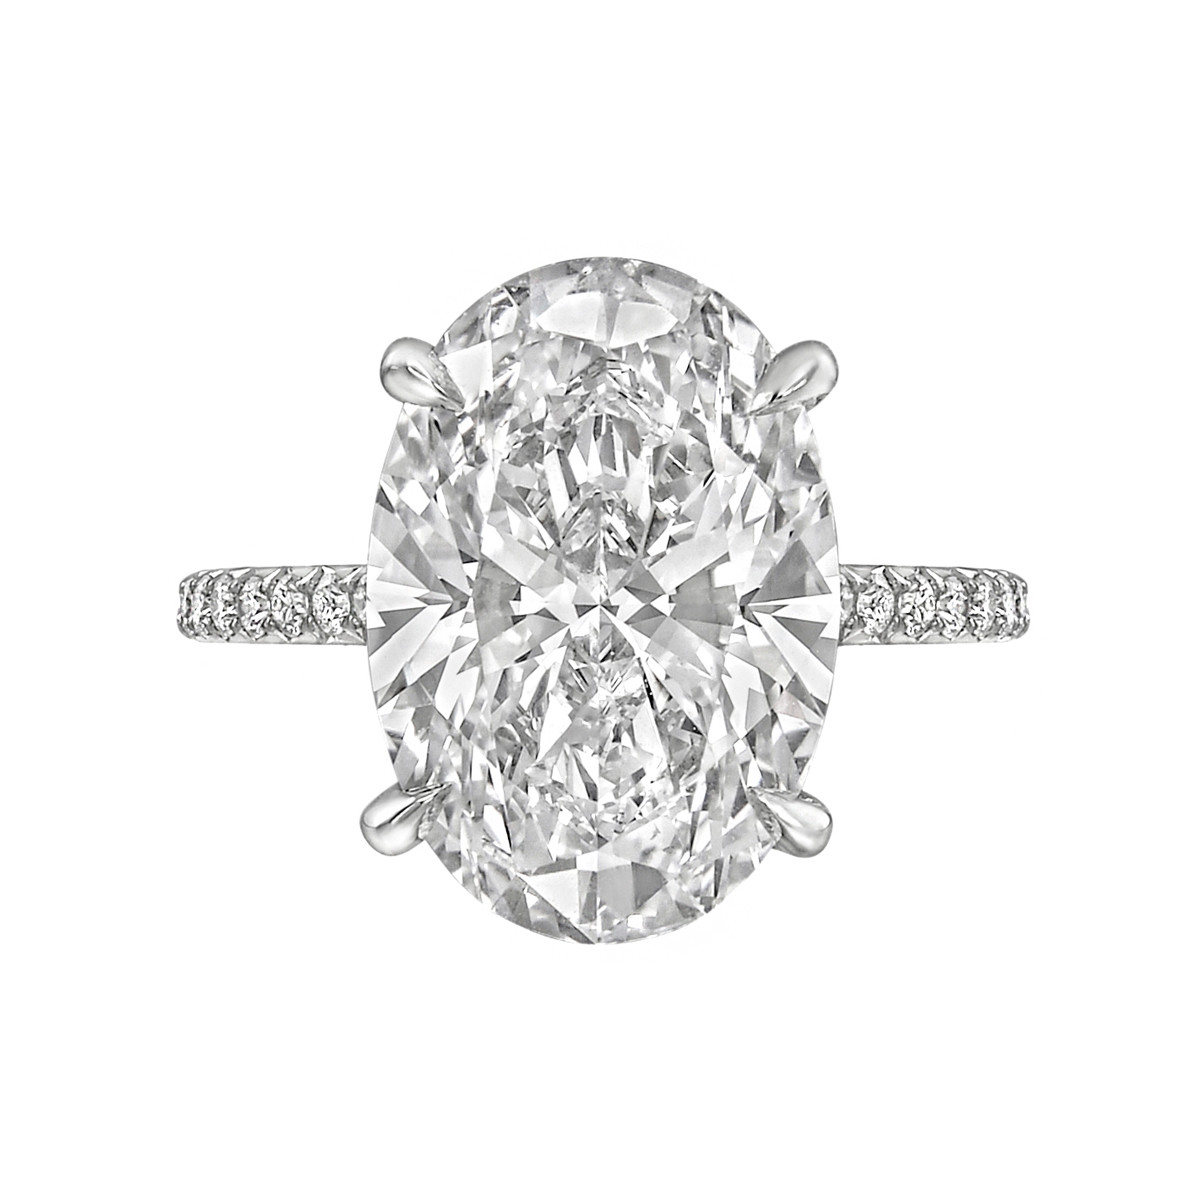 6.21ct Type IIA Oval-Cut Diamond Ring (D/Flawless)